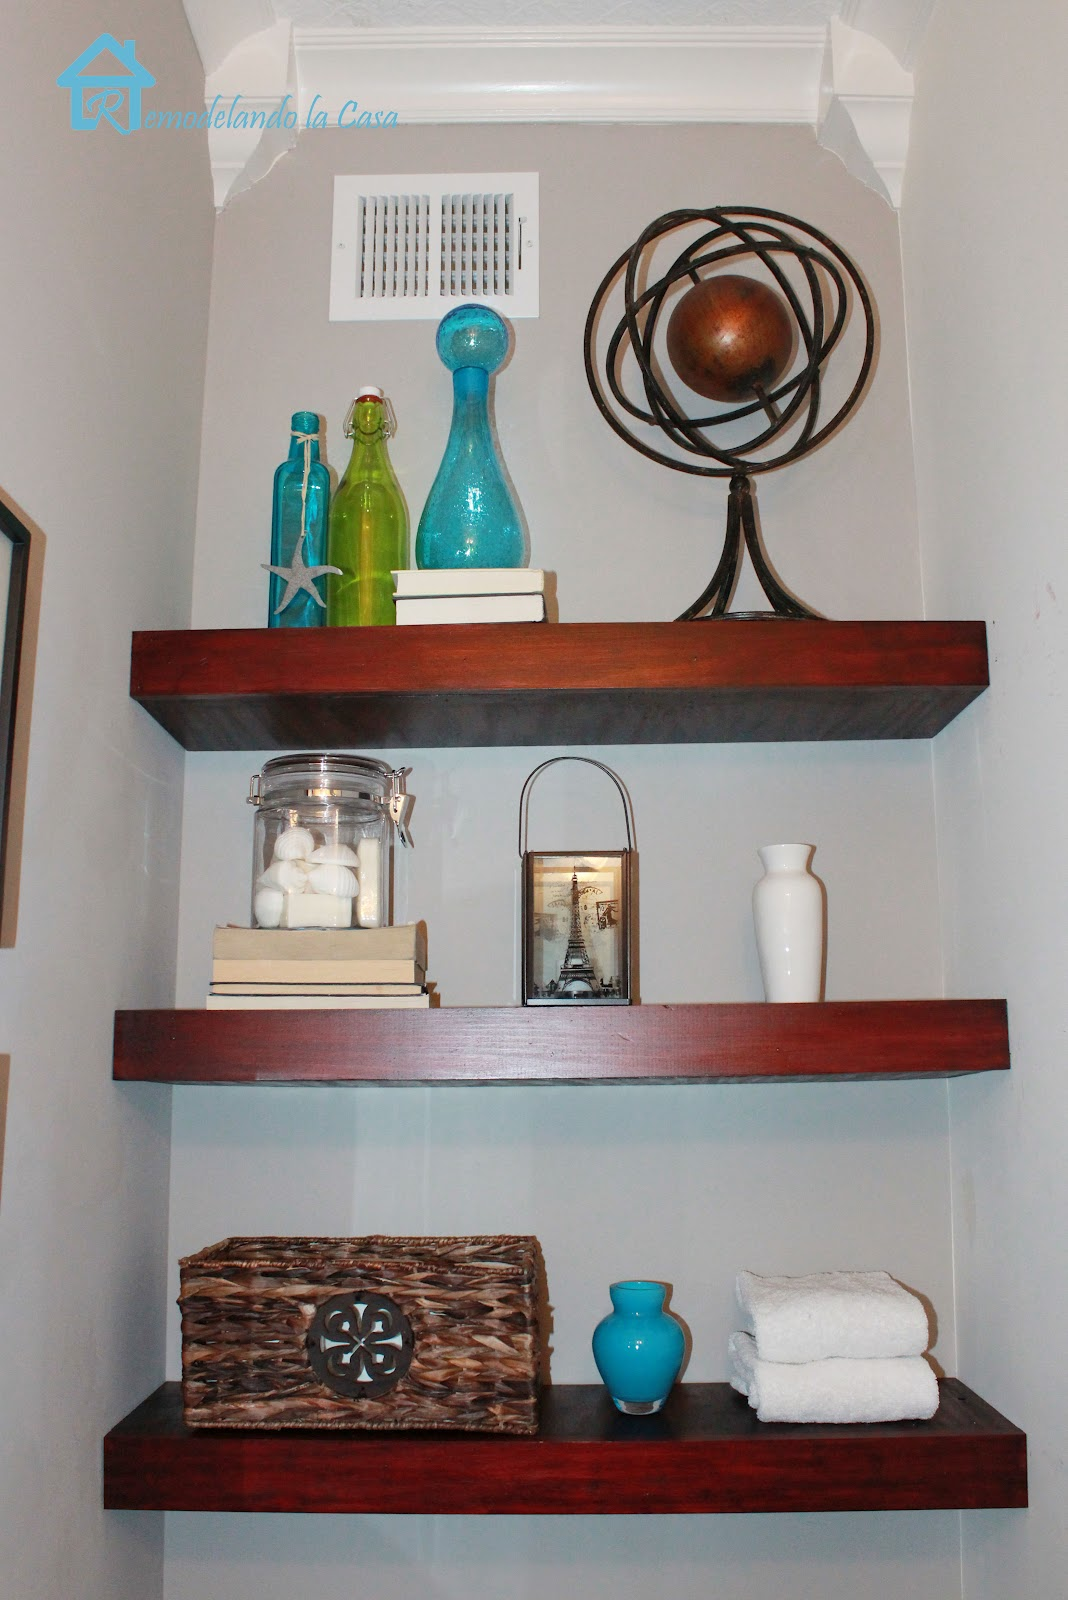 Diy floating shelves remodelando la casa - Floating shelf ideas for bathroom ...